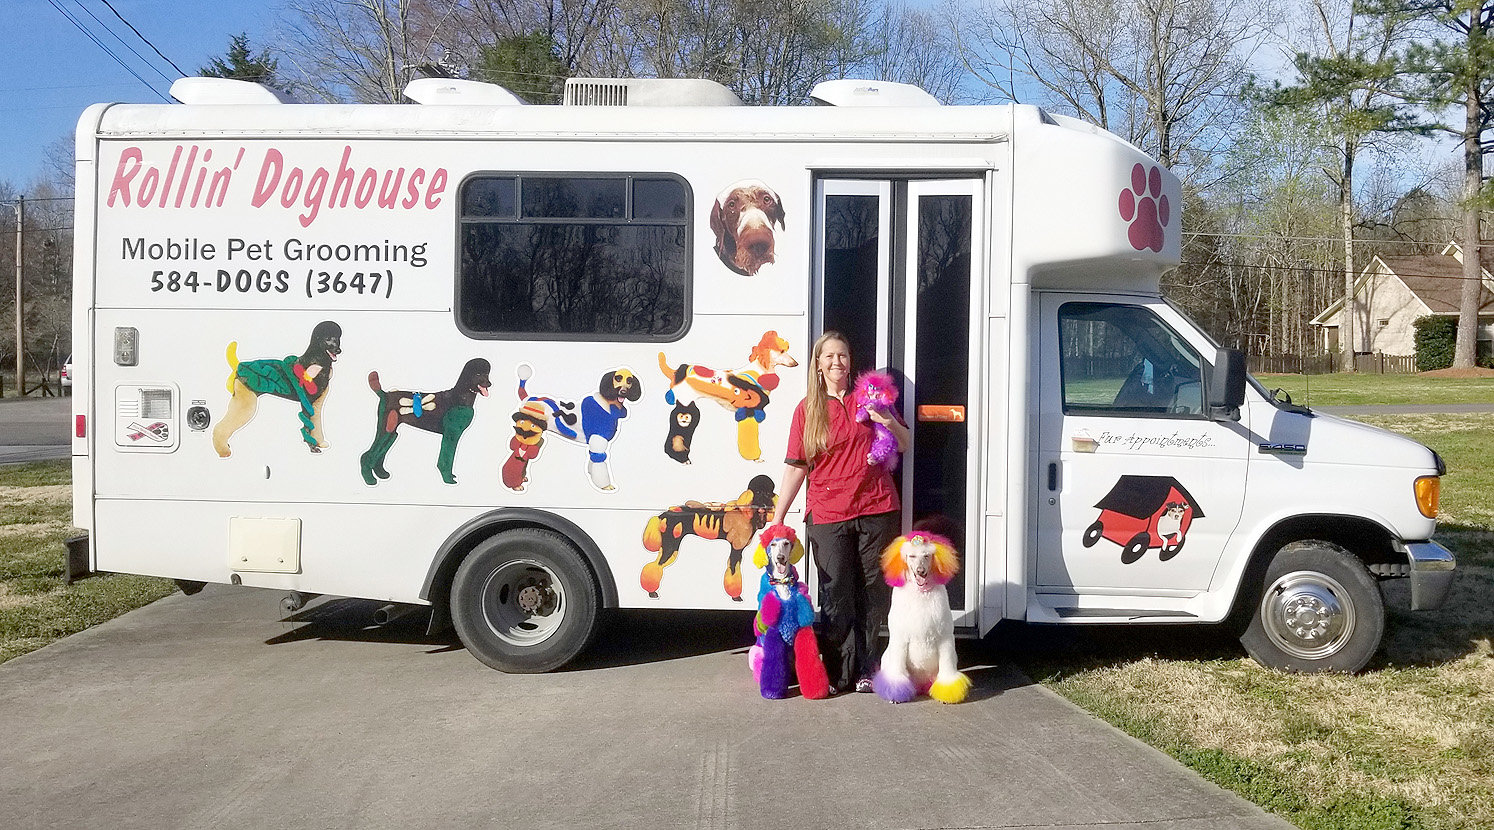 CINDY OLIVER, a local creative grooming stylist for dogs, is an accomplished groomer, having run her mobile dog grooming business, the Rollin' Dog House, for 15 years.